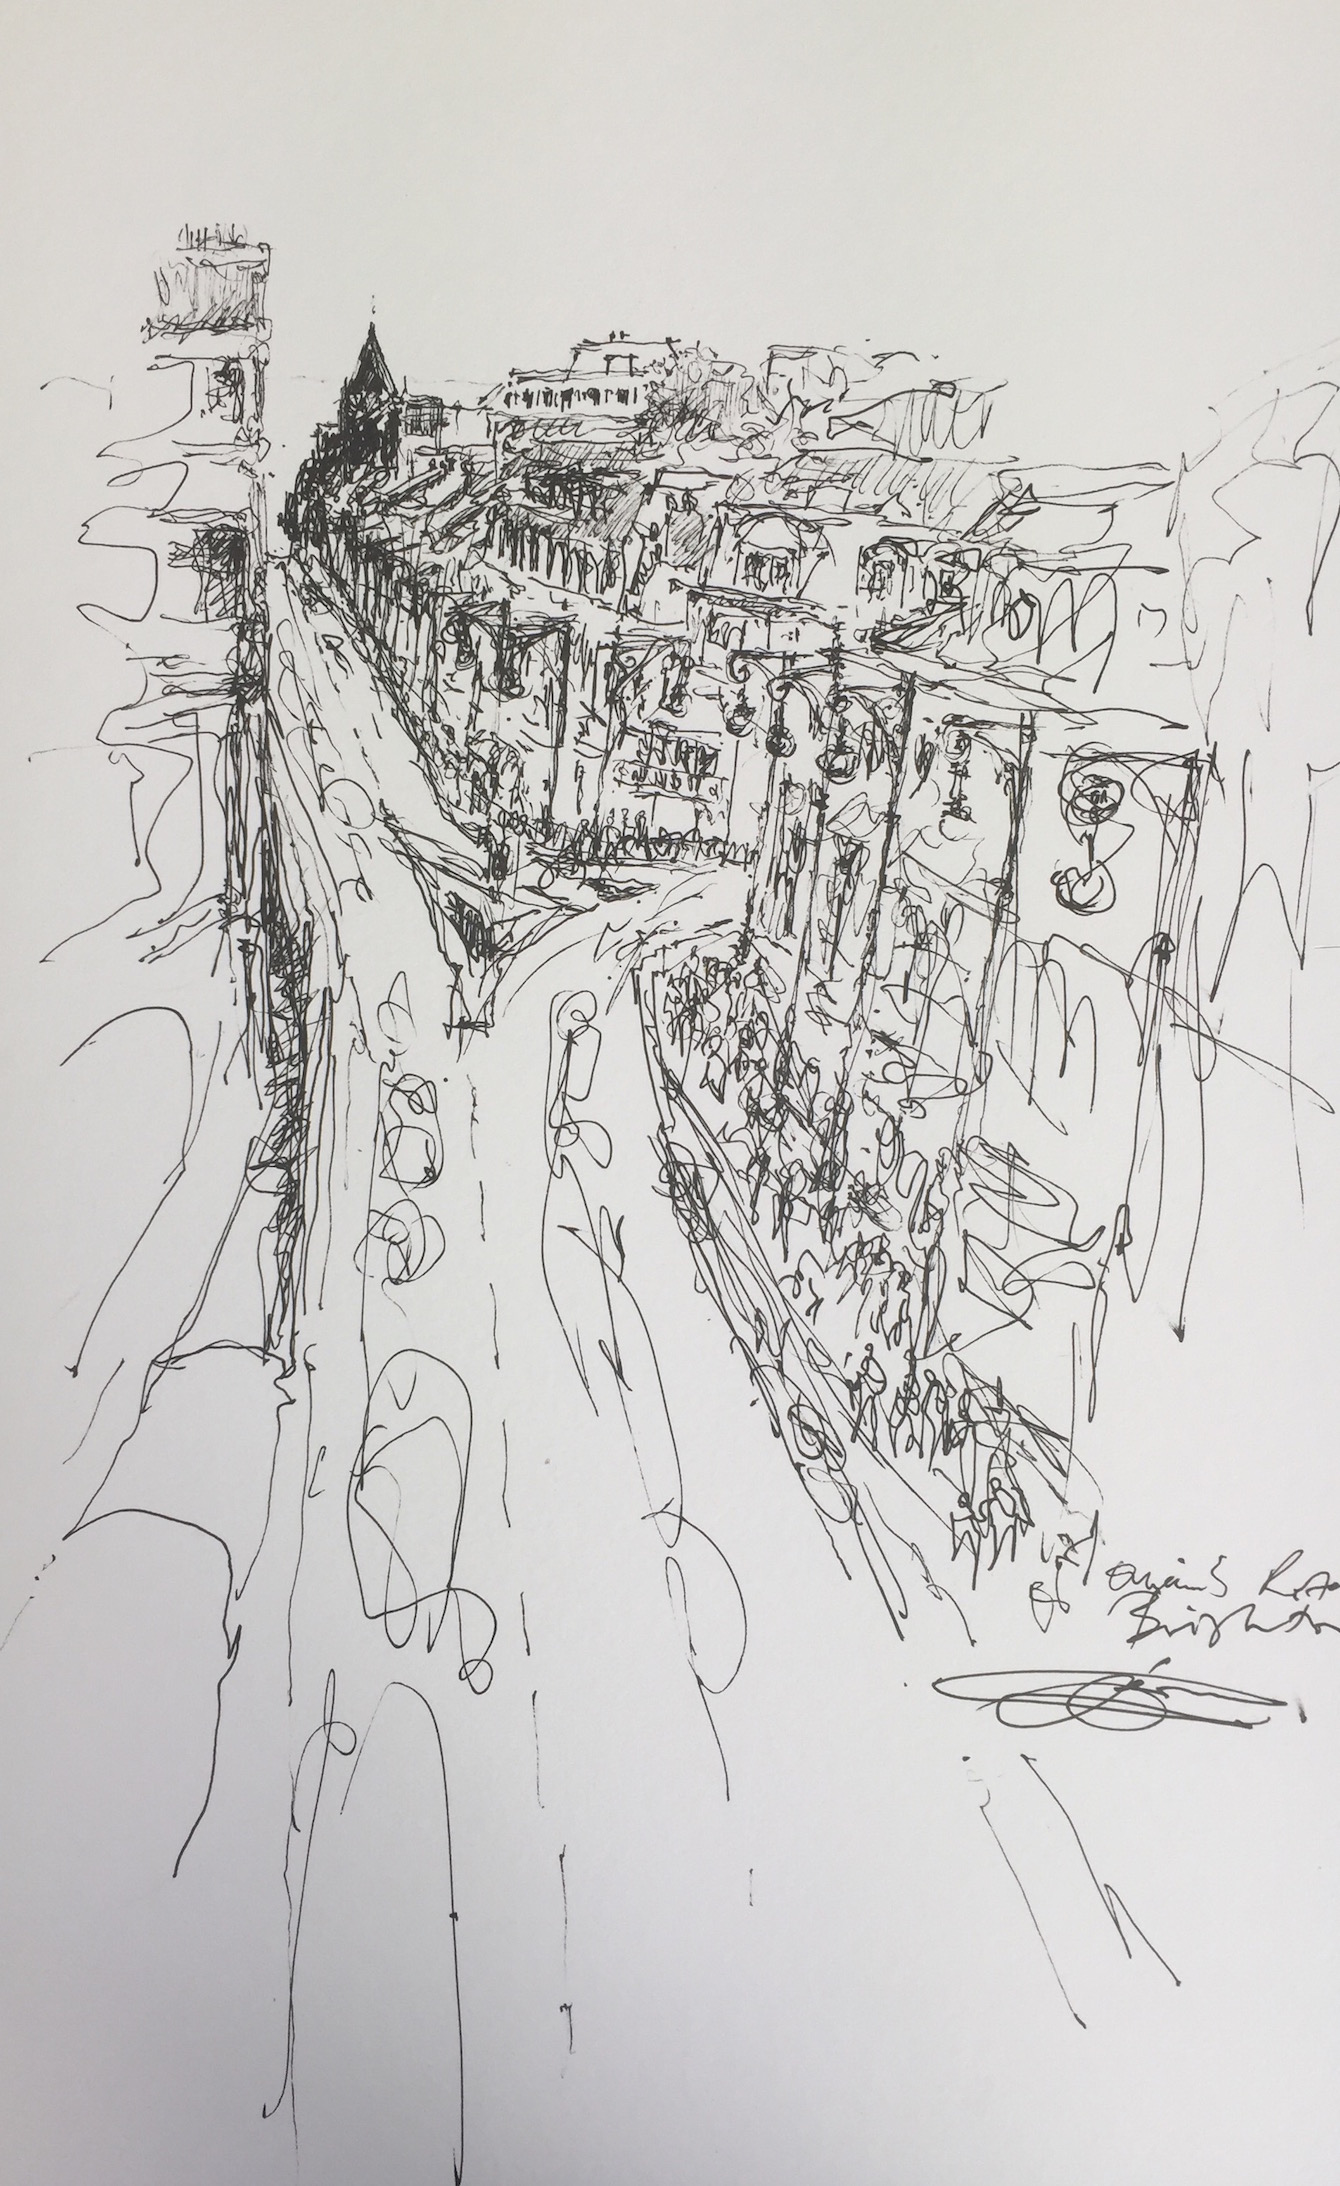 Artist: Solange Leon Iriarte  Title: Queens Road, Brighton  Medium: Pencil & inkpen  Size: 40 x 24.5 cm  Price: £1100